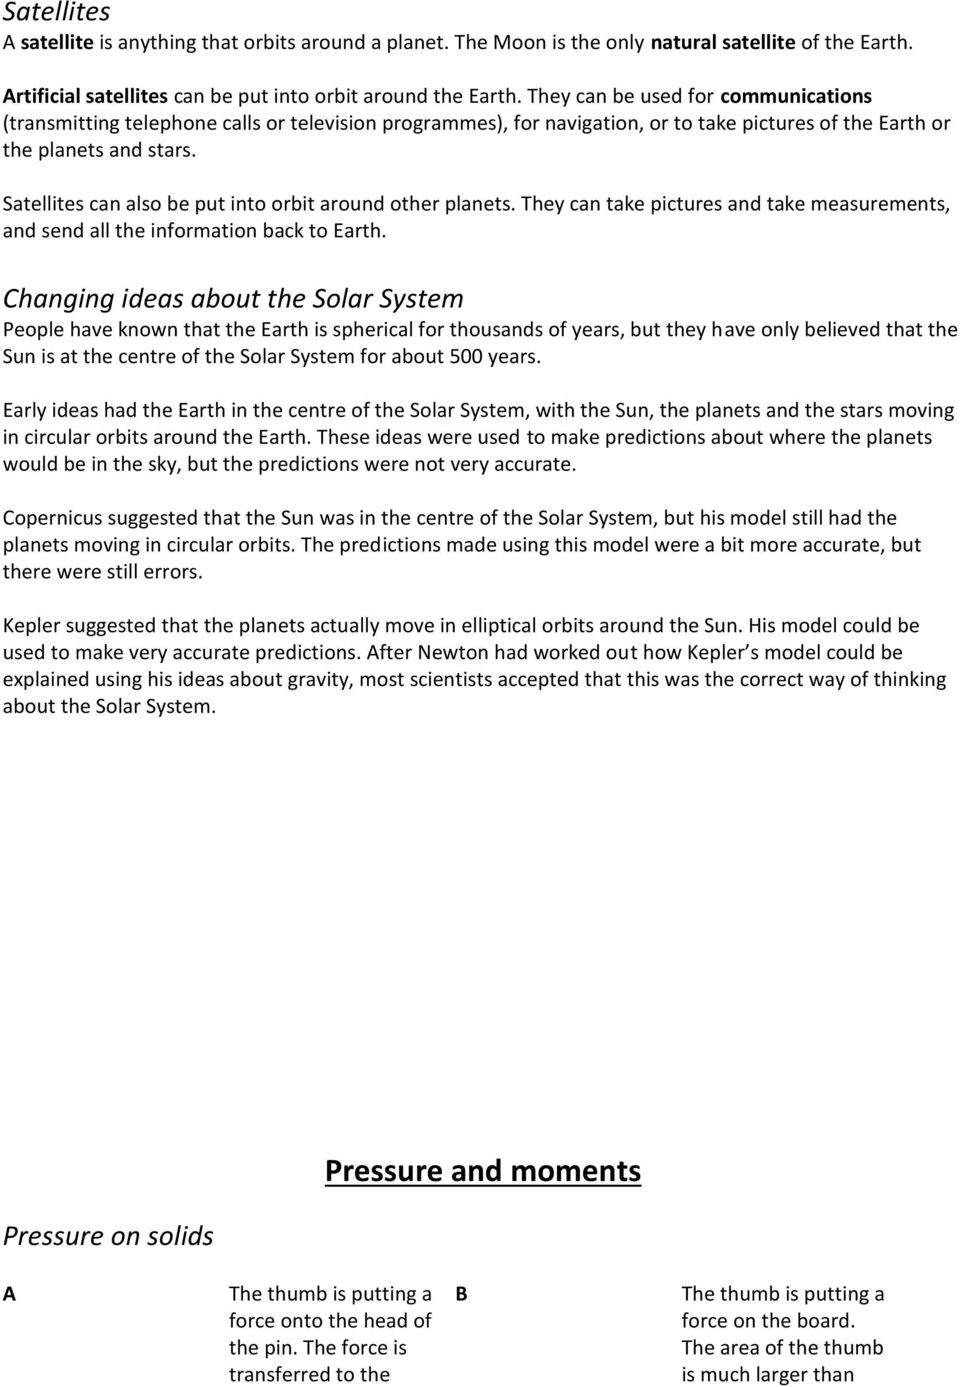 Ks3 Revision Booklet Physics Pdf Electric Current And Potential Difference 5 Satellites Can Also Be Put Into Orbit Around Other Planets They Take Pictures